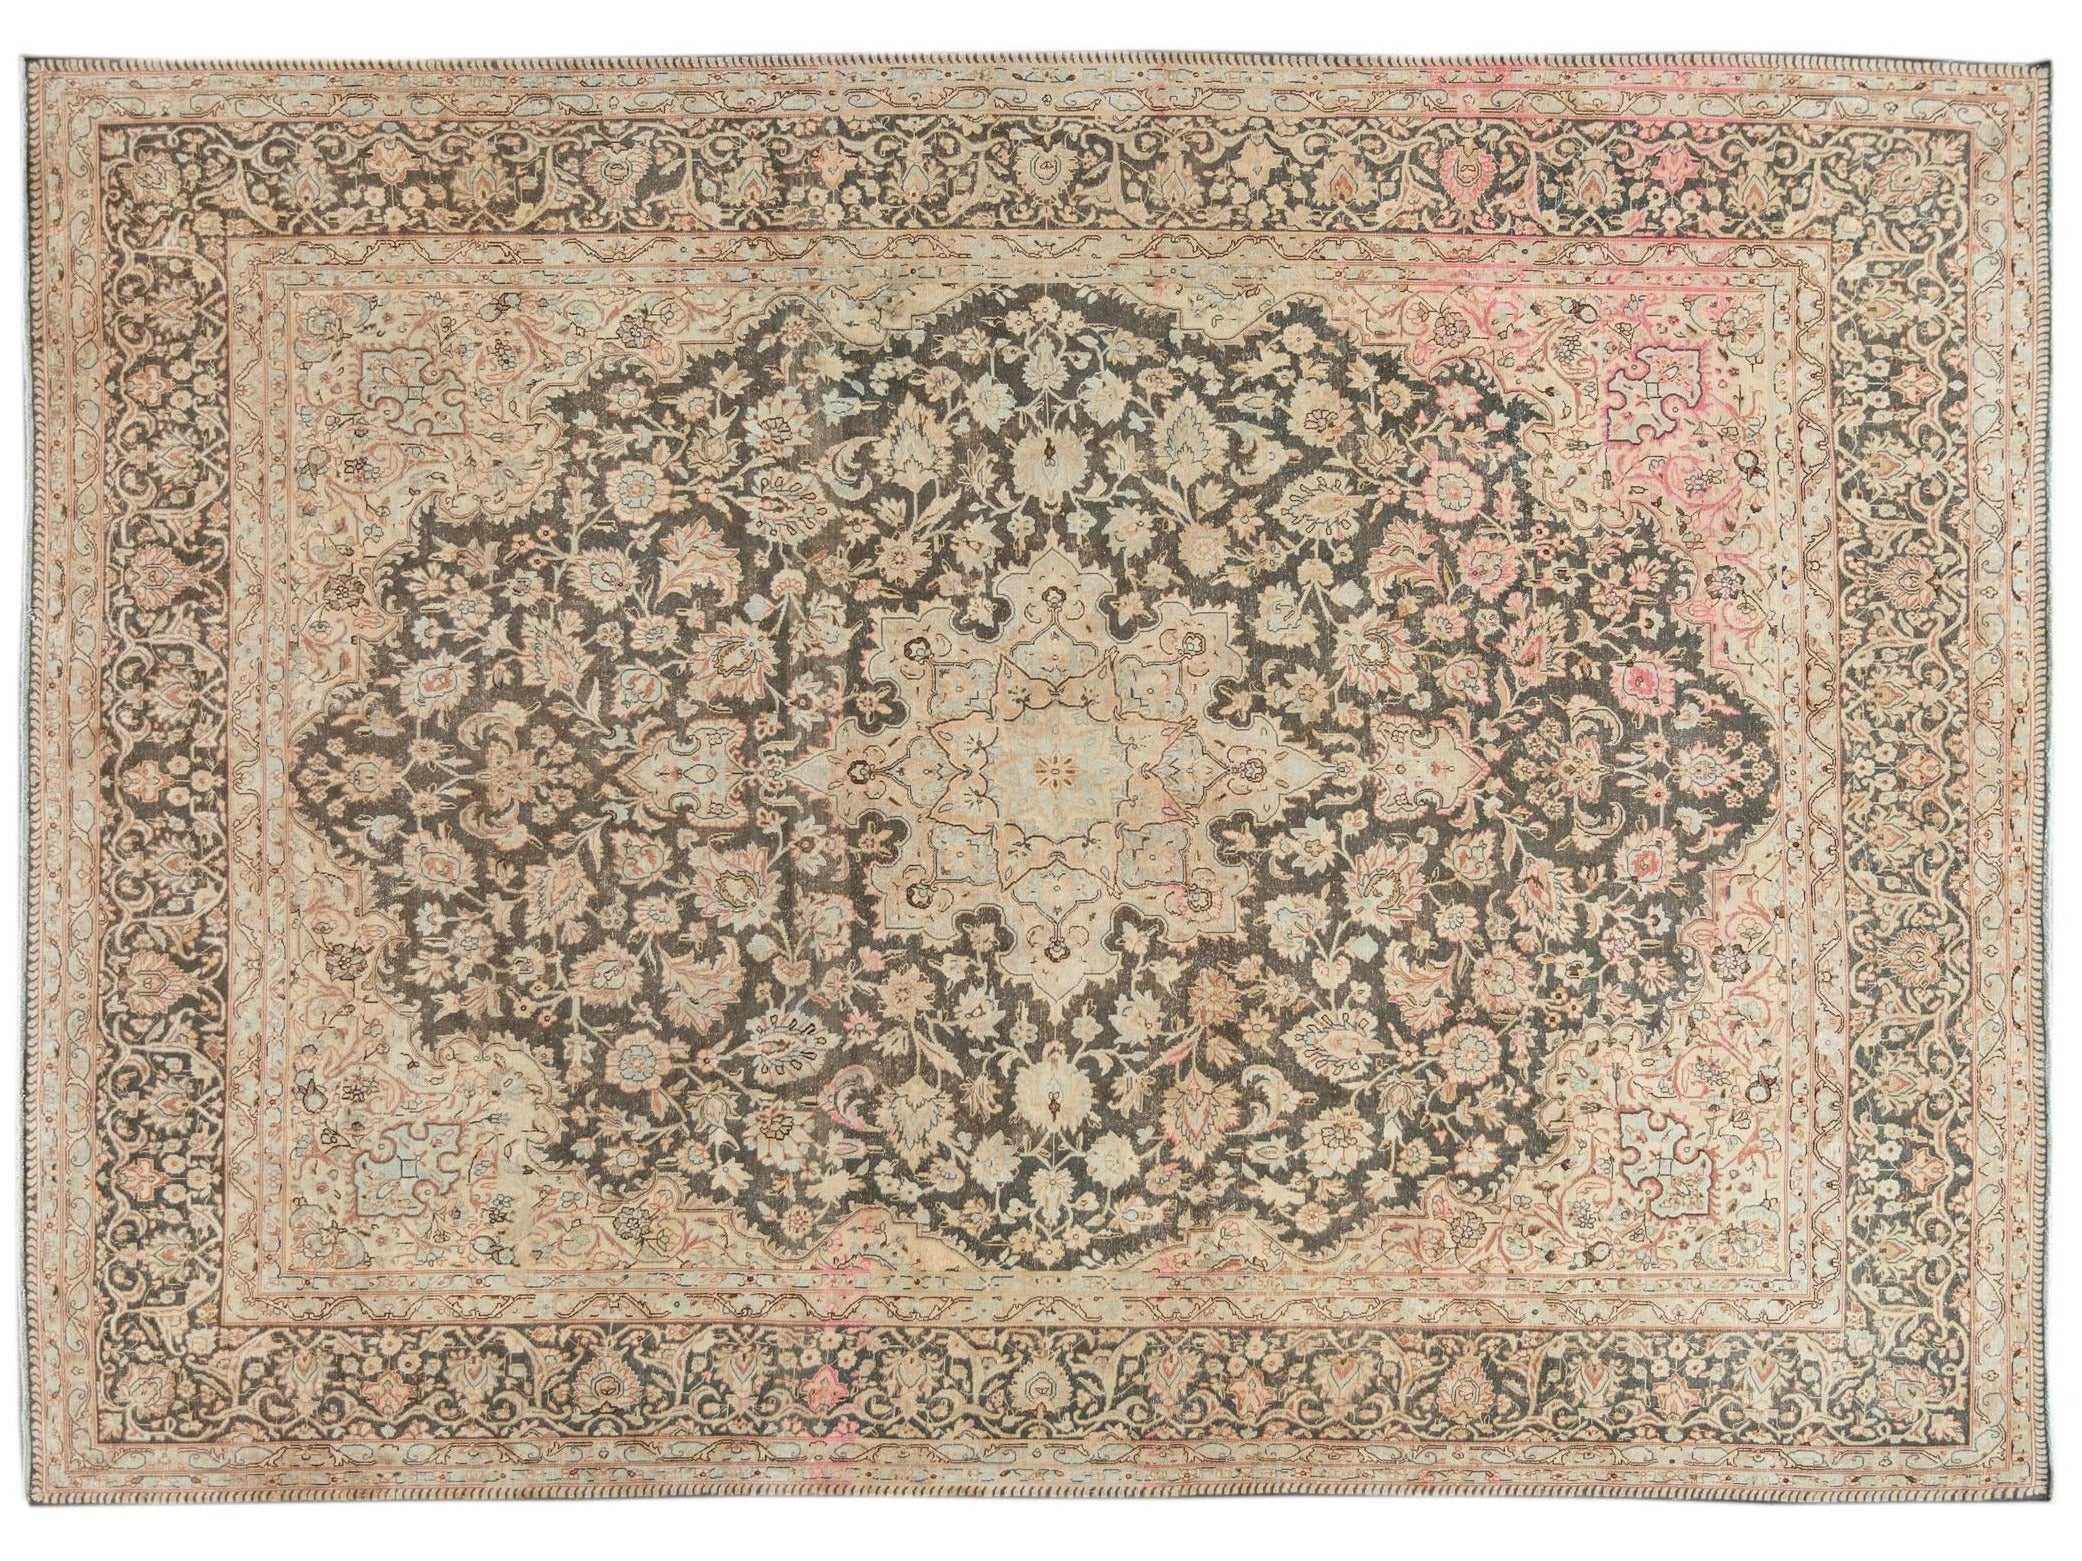 Mid 20th Century Vintage Distressed Wool Rug